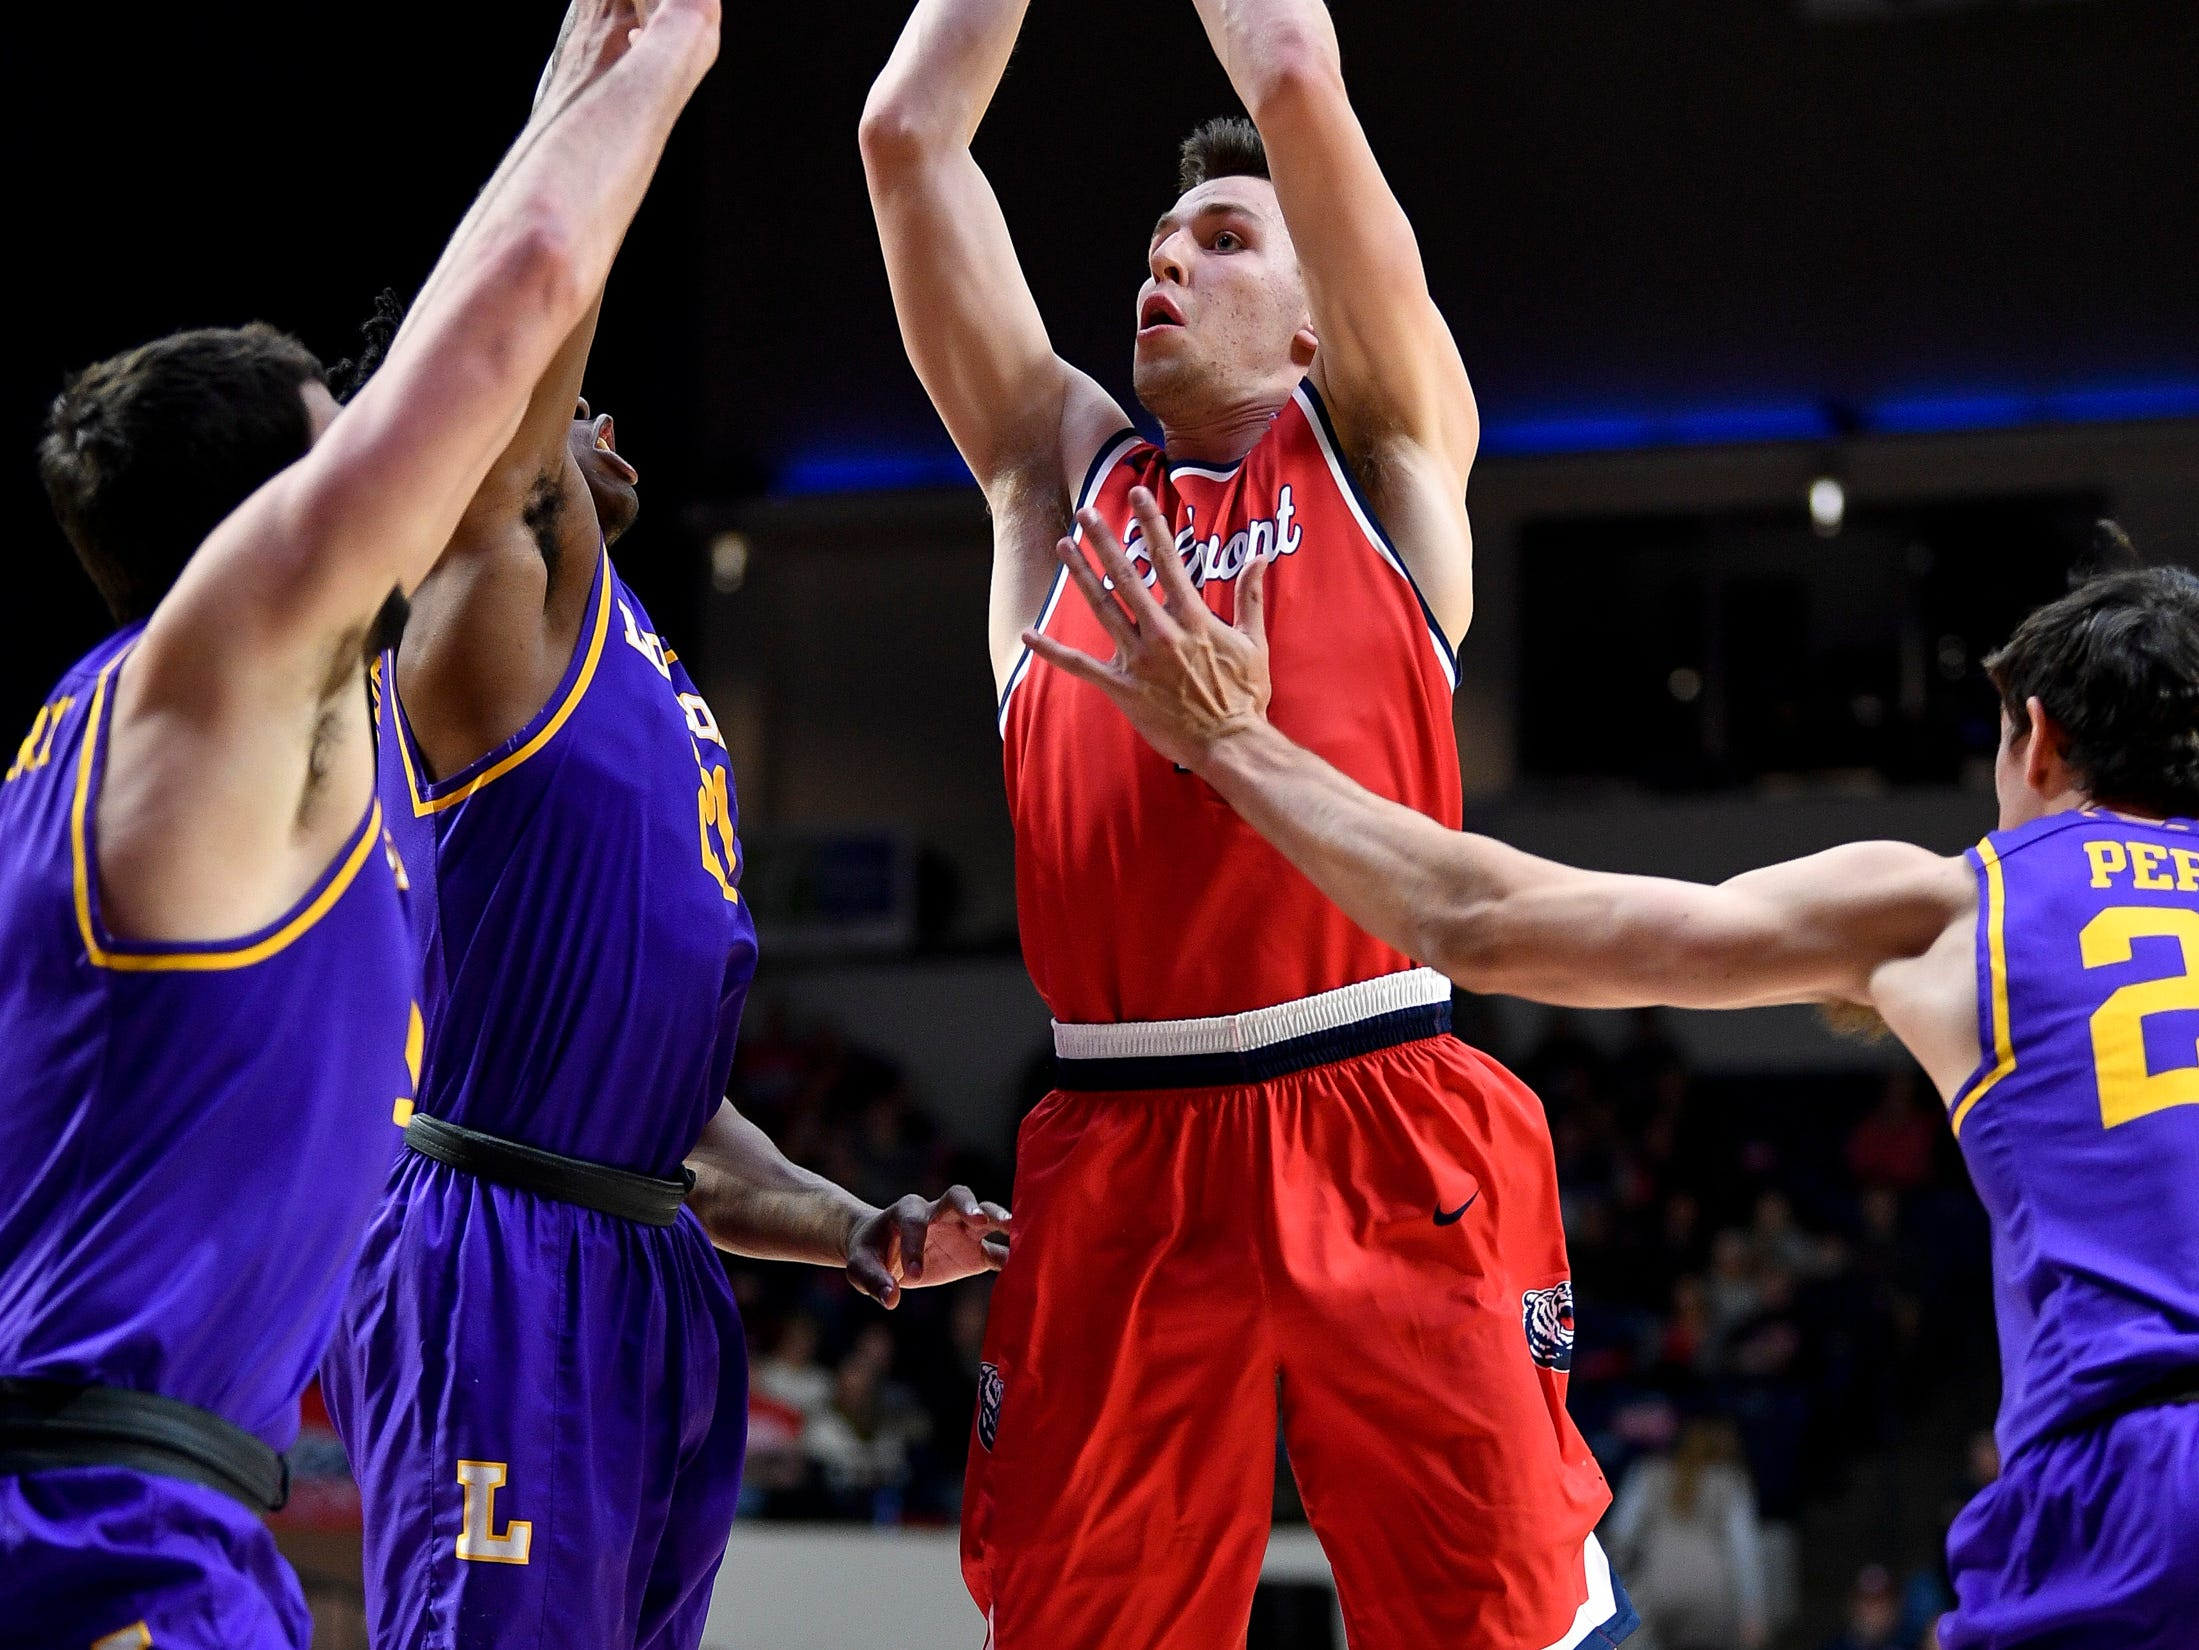 Belmont guard Grayson Murphy (2) shoots over Lipscomb guard Kenny Cooper (21) during the first half at the Curb Event Center in Nashville, Tenn., Tuesday, Dec. 4, 2018.